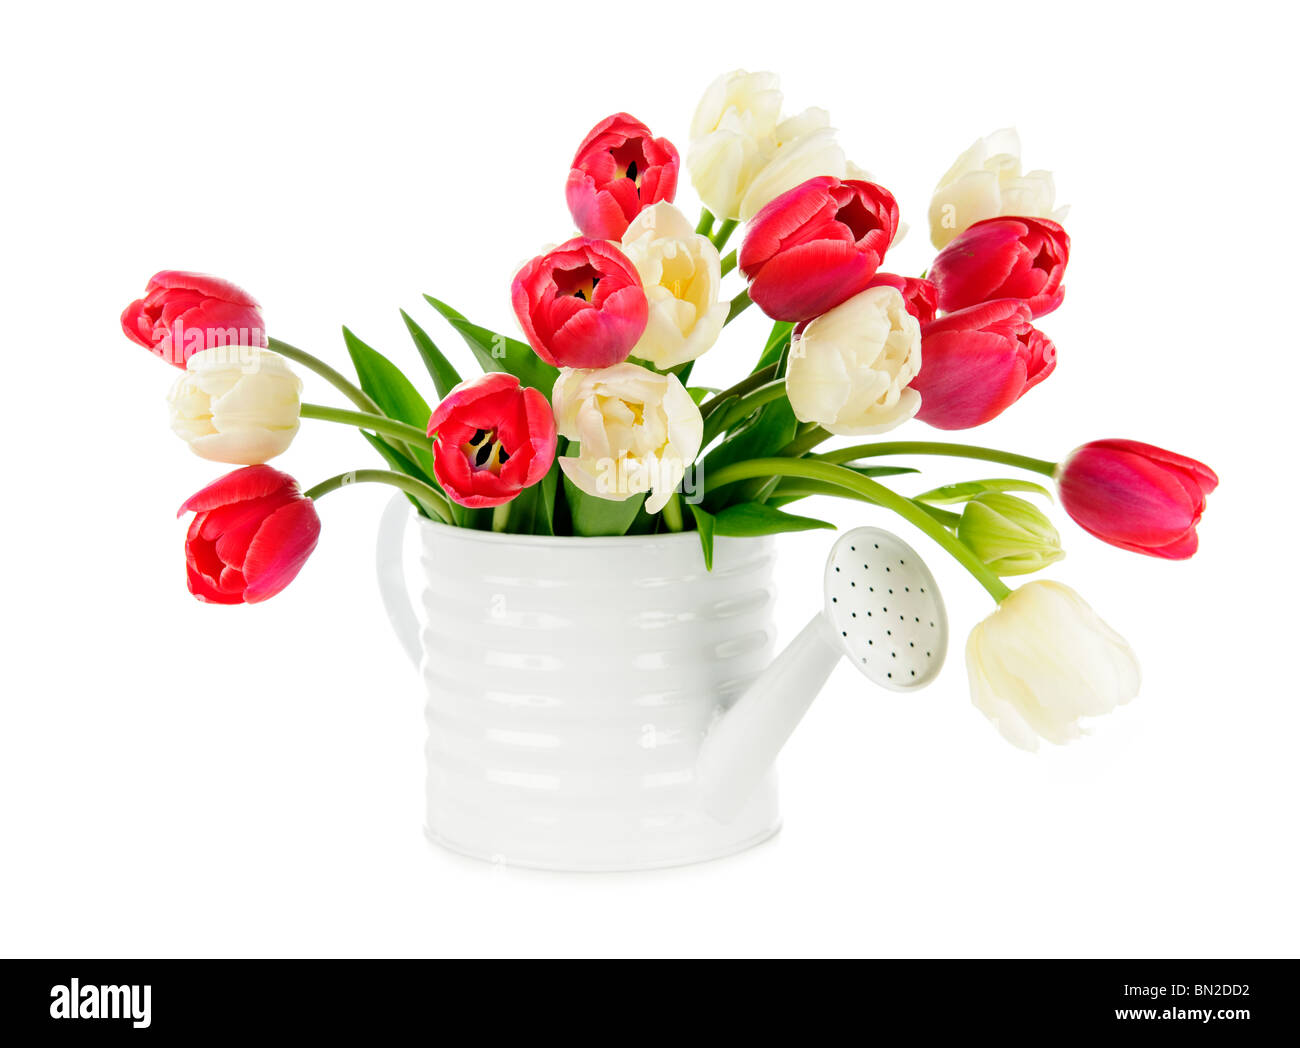 Bouquet of red and white tulips isolated on white background - Stock Image